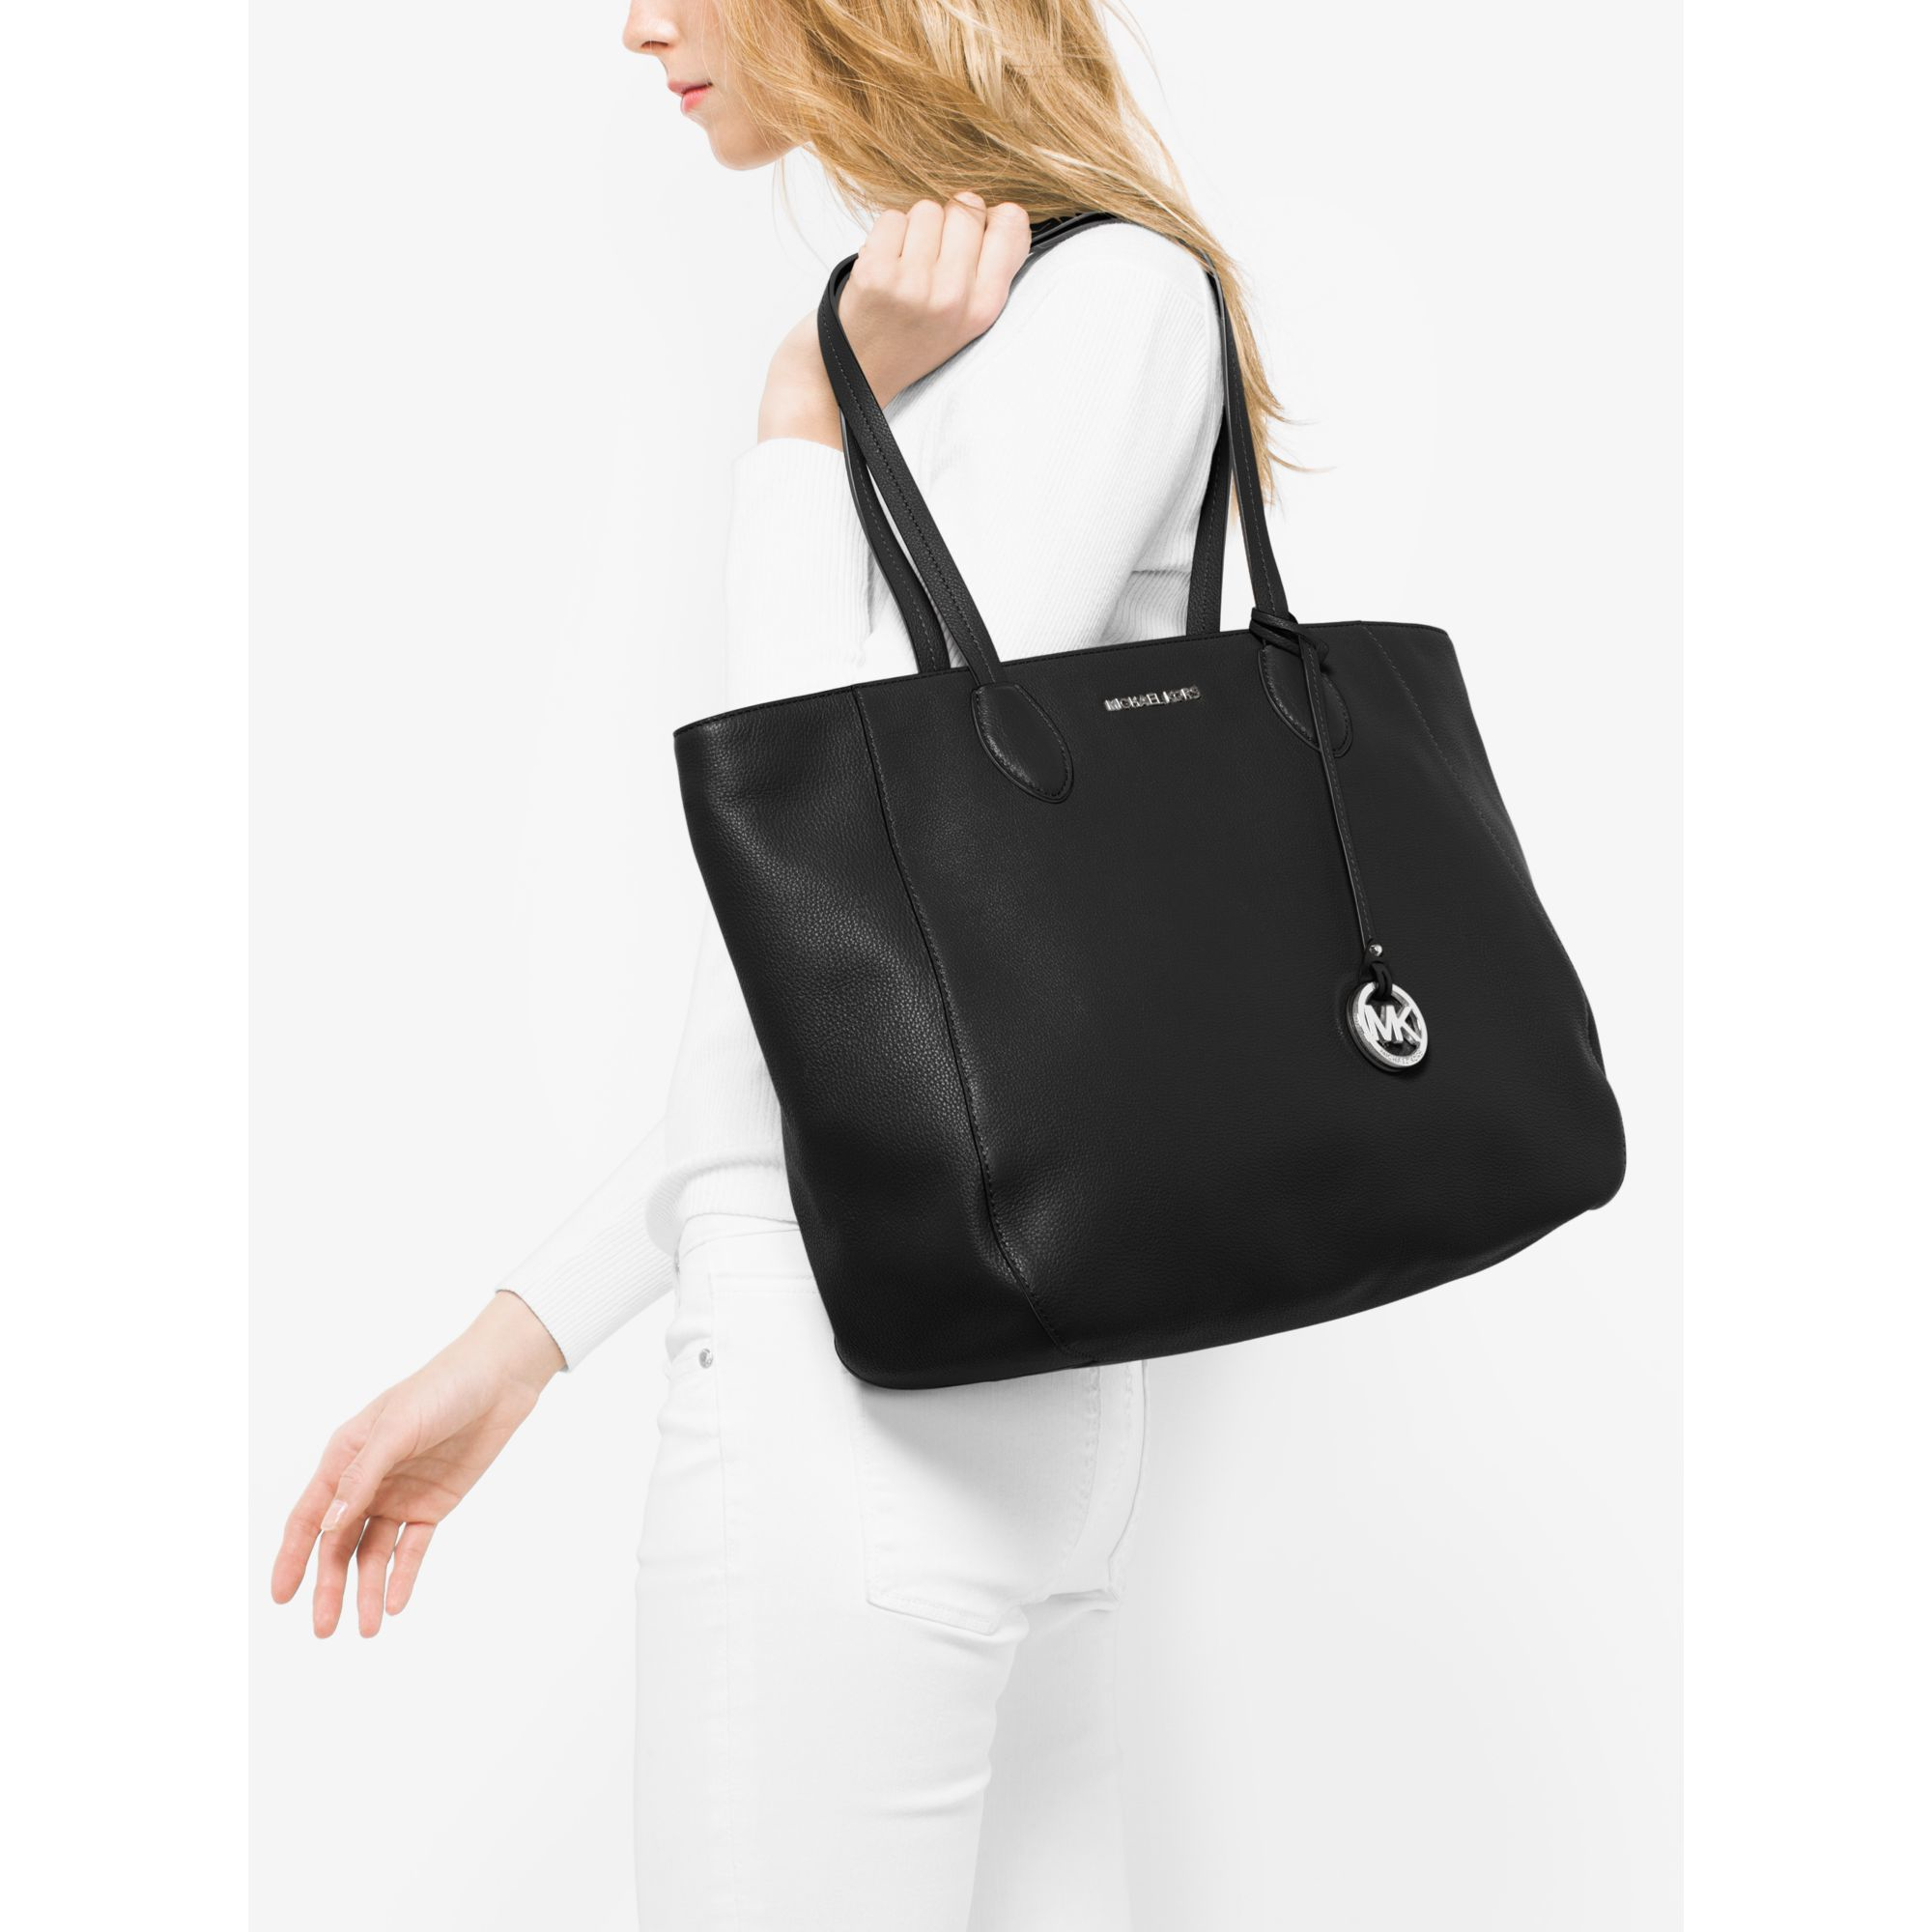 8effd979646f Michael Kors Ani Large Leather Tote in Black - Lyst